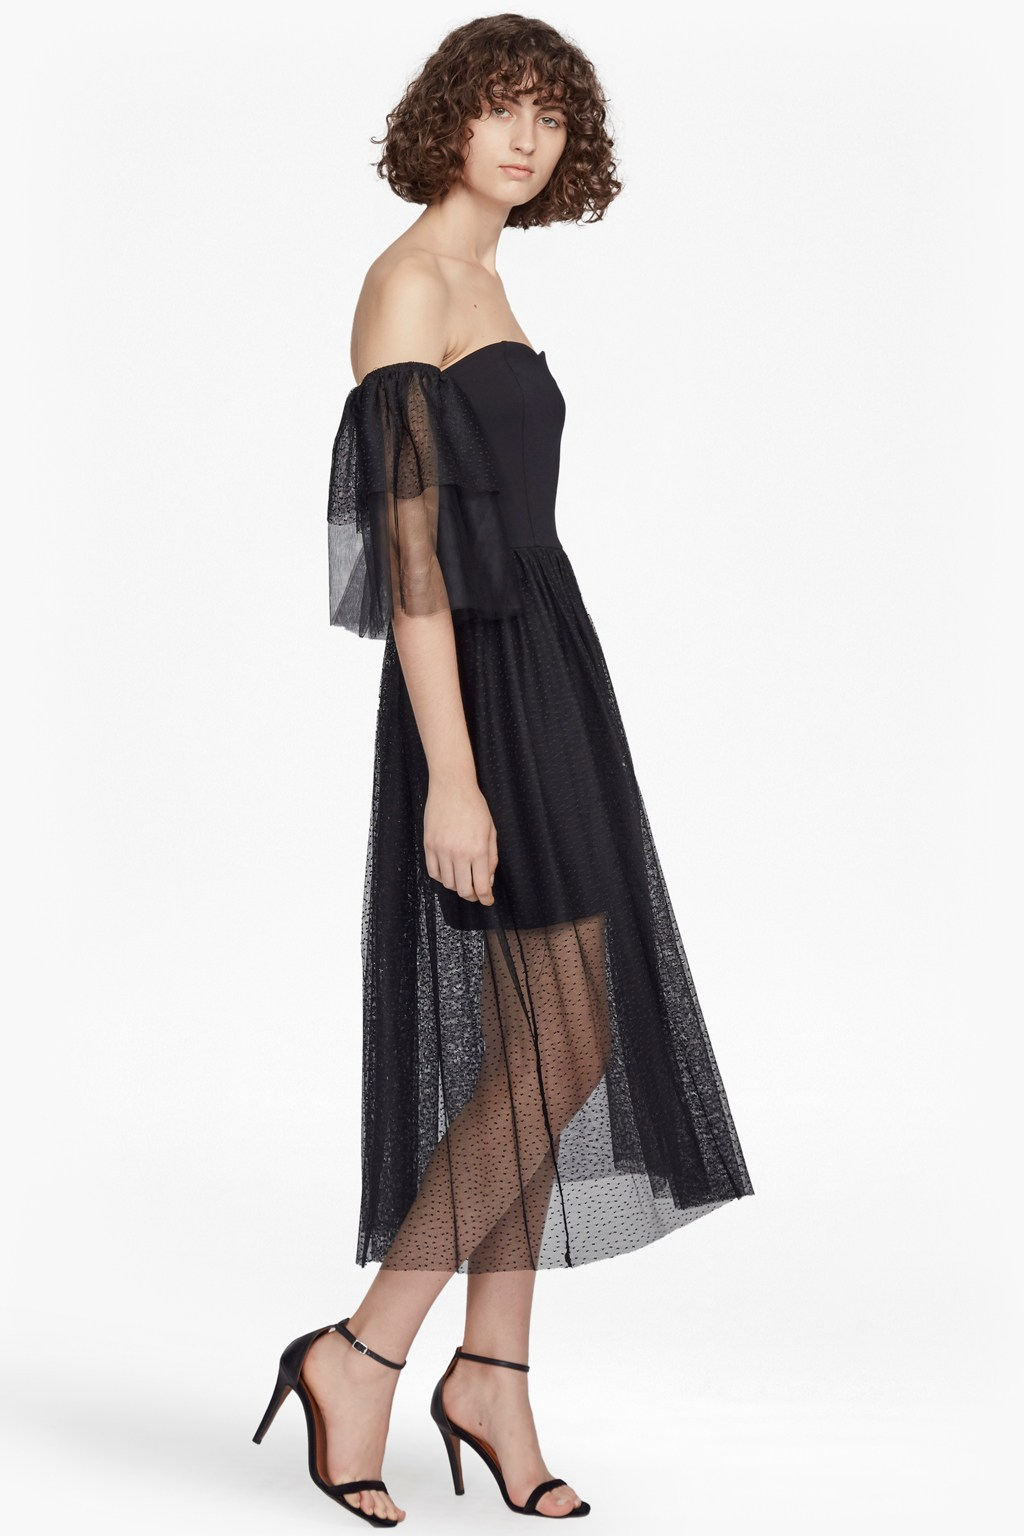 c451ac5f7c8d Valentin Sheer Jersey Off Shoulder Midi Dress. loading images.